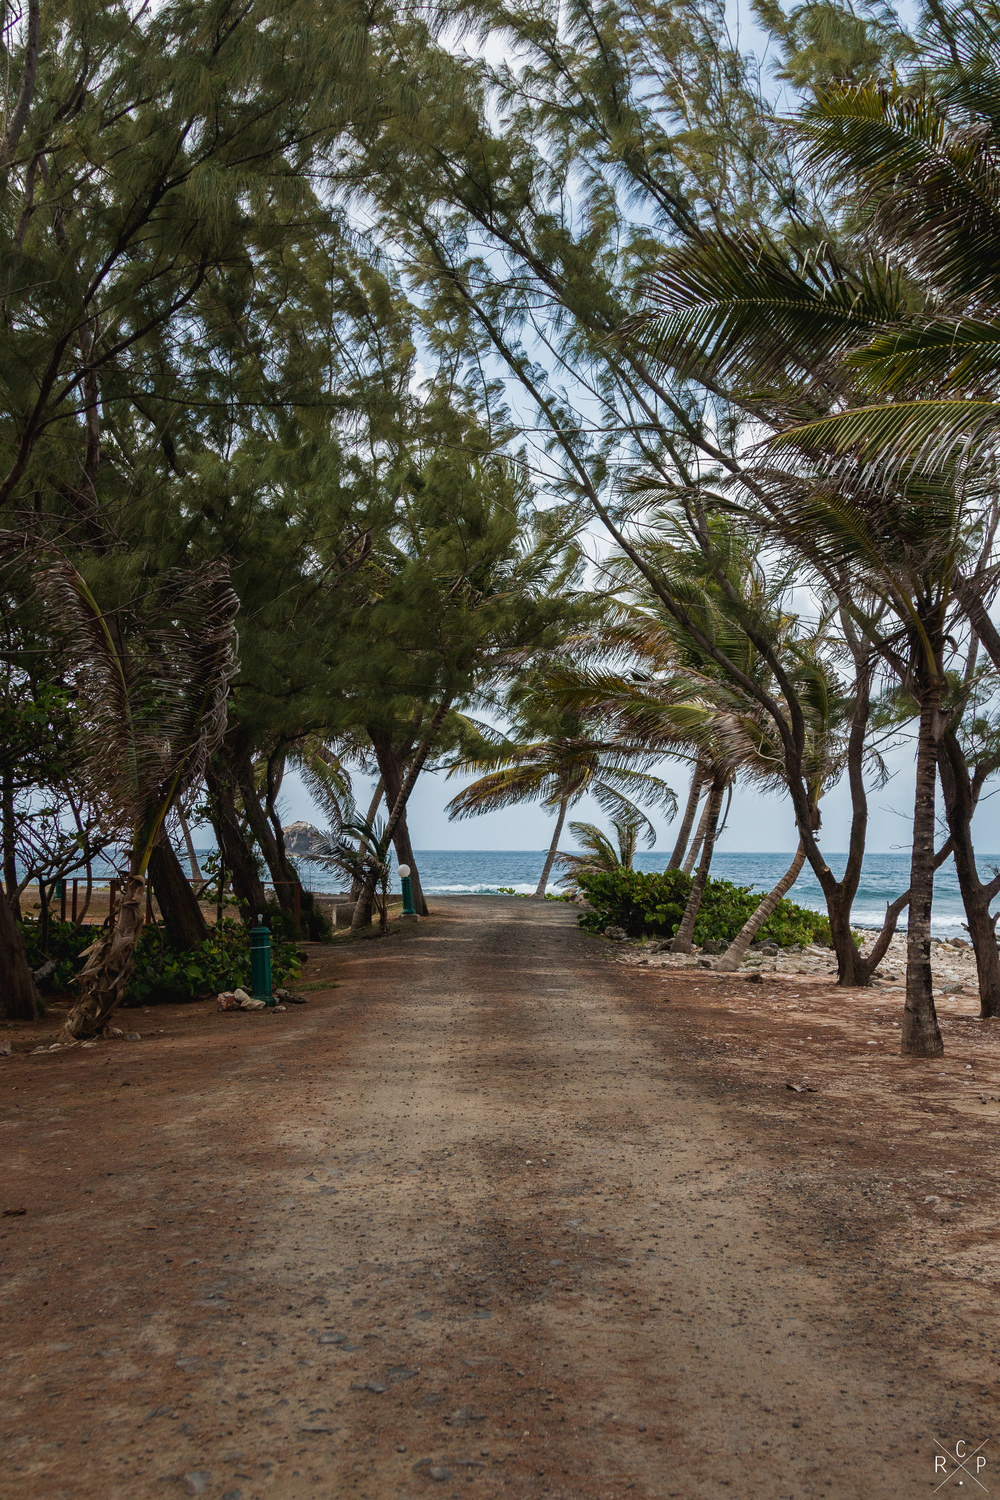 Palm Lined Path - Pigeon Island, Saint Lucia 29/04/2016